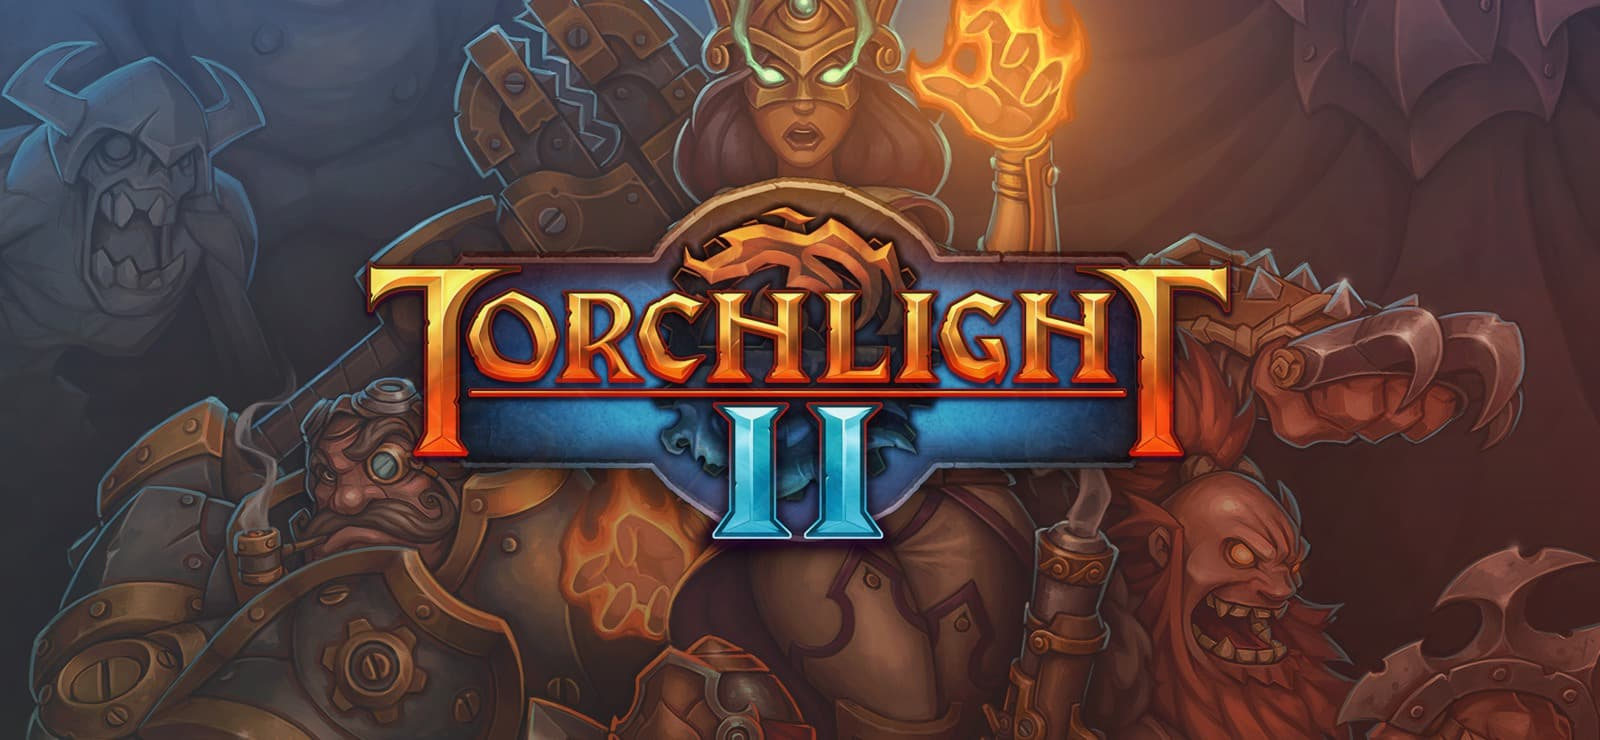 Torchlight 2 free games Epic Games store